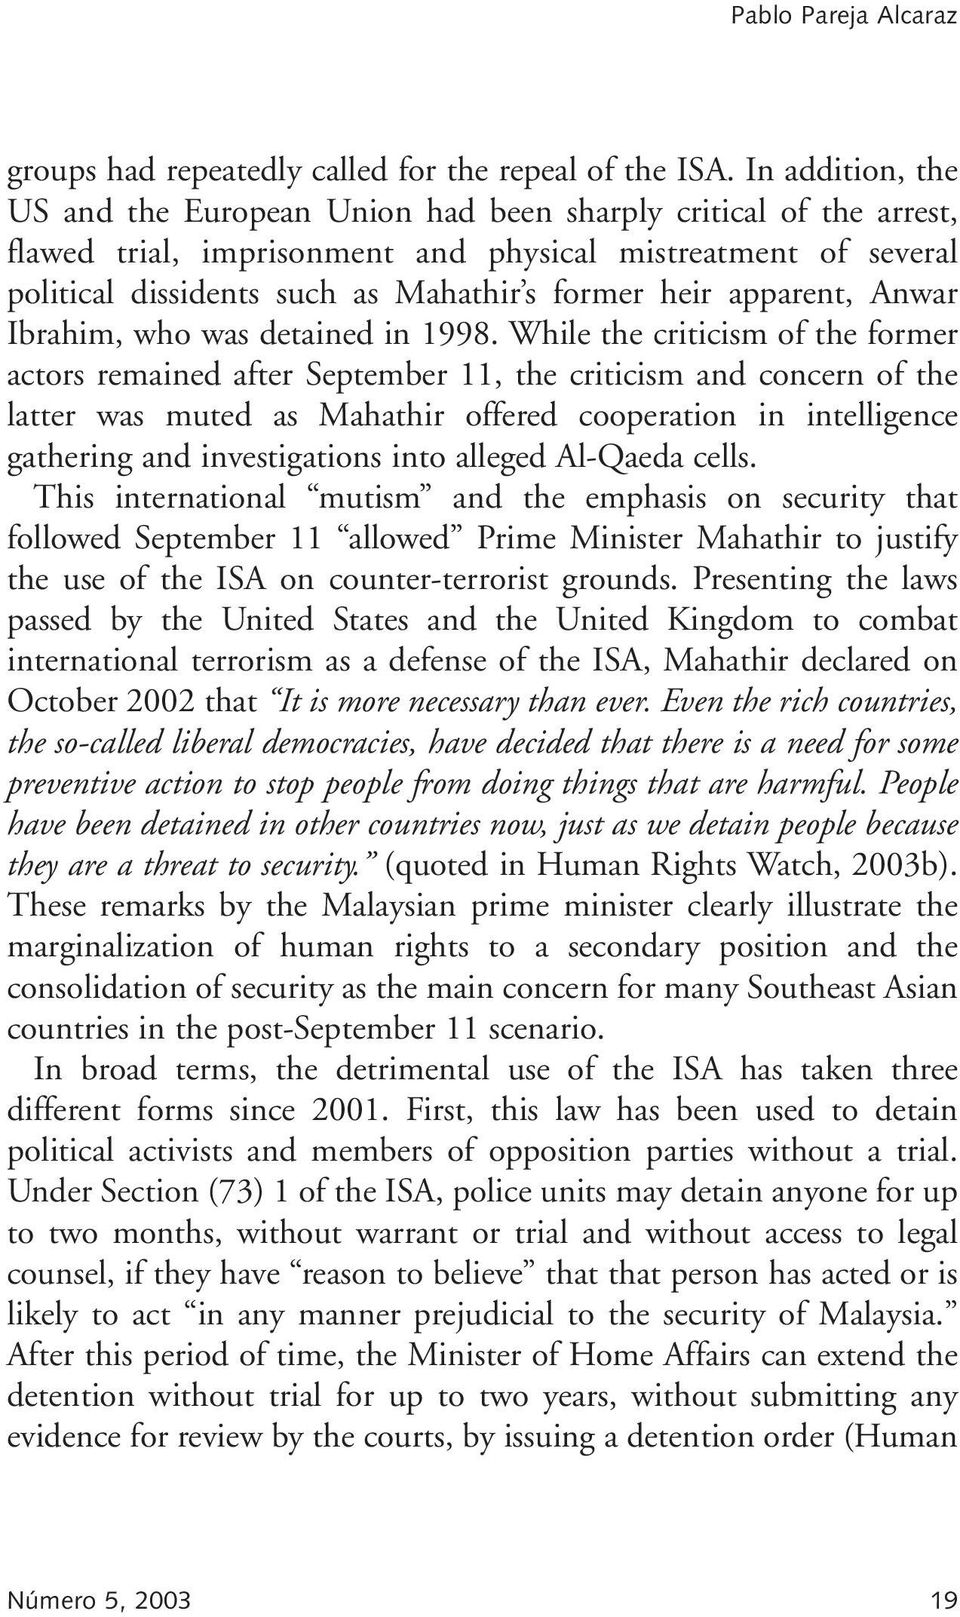 apparent, Anwar Ibrahim, who was detained in 1998.